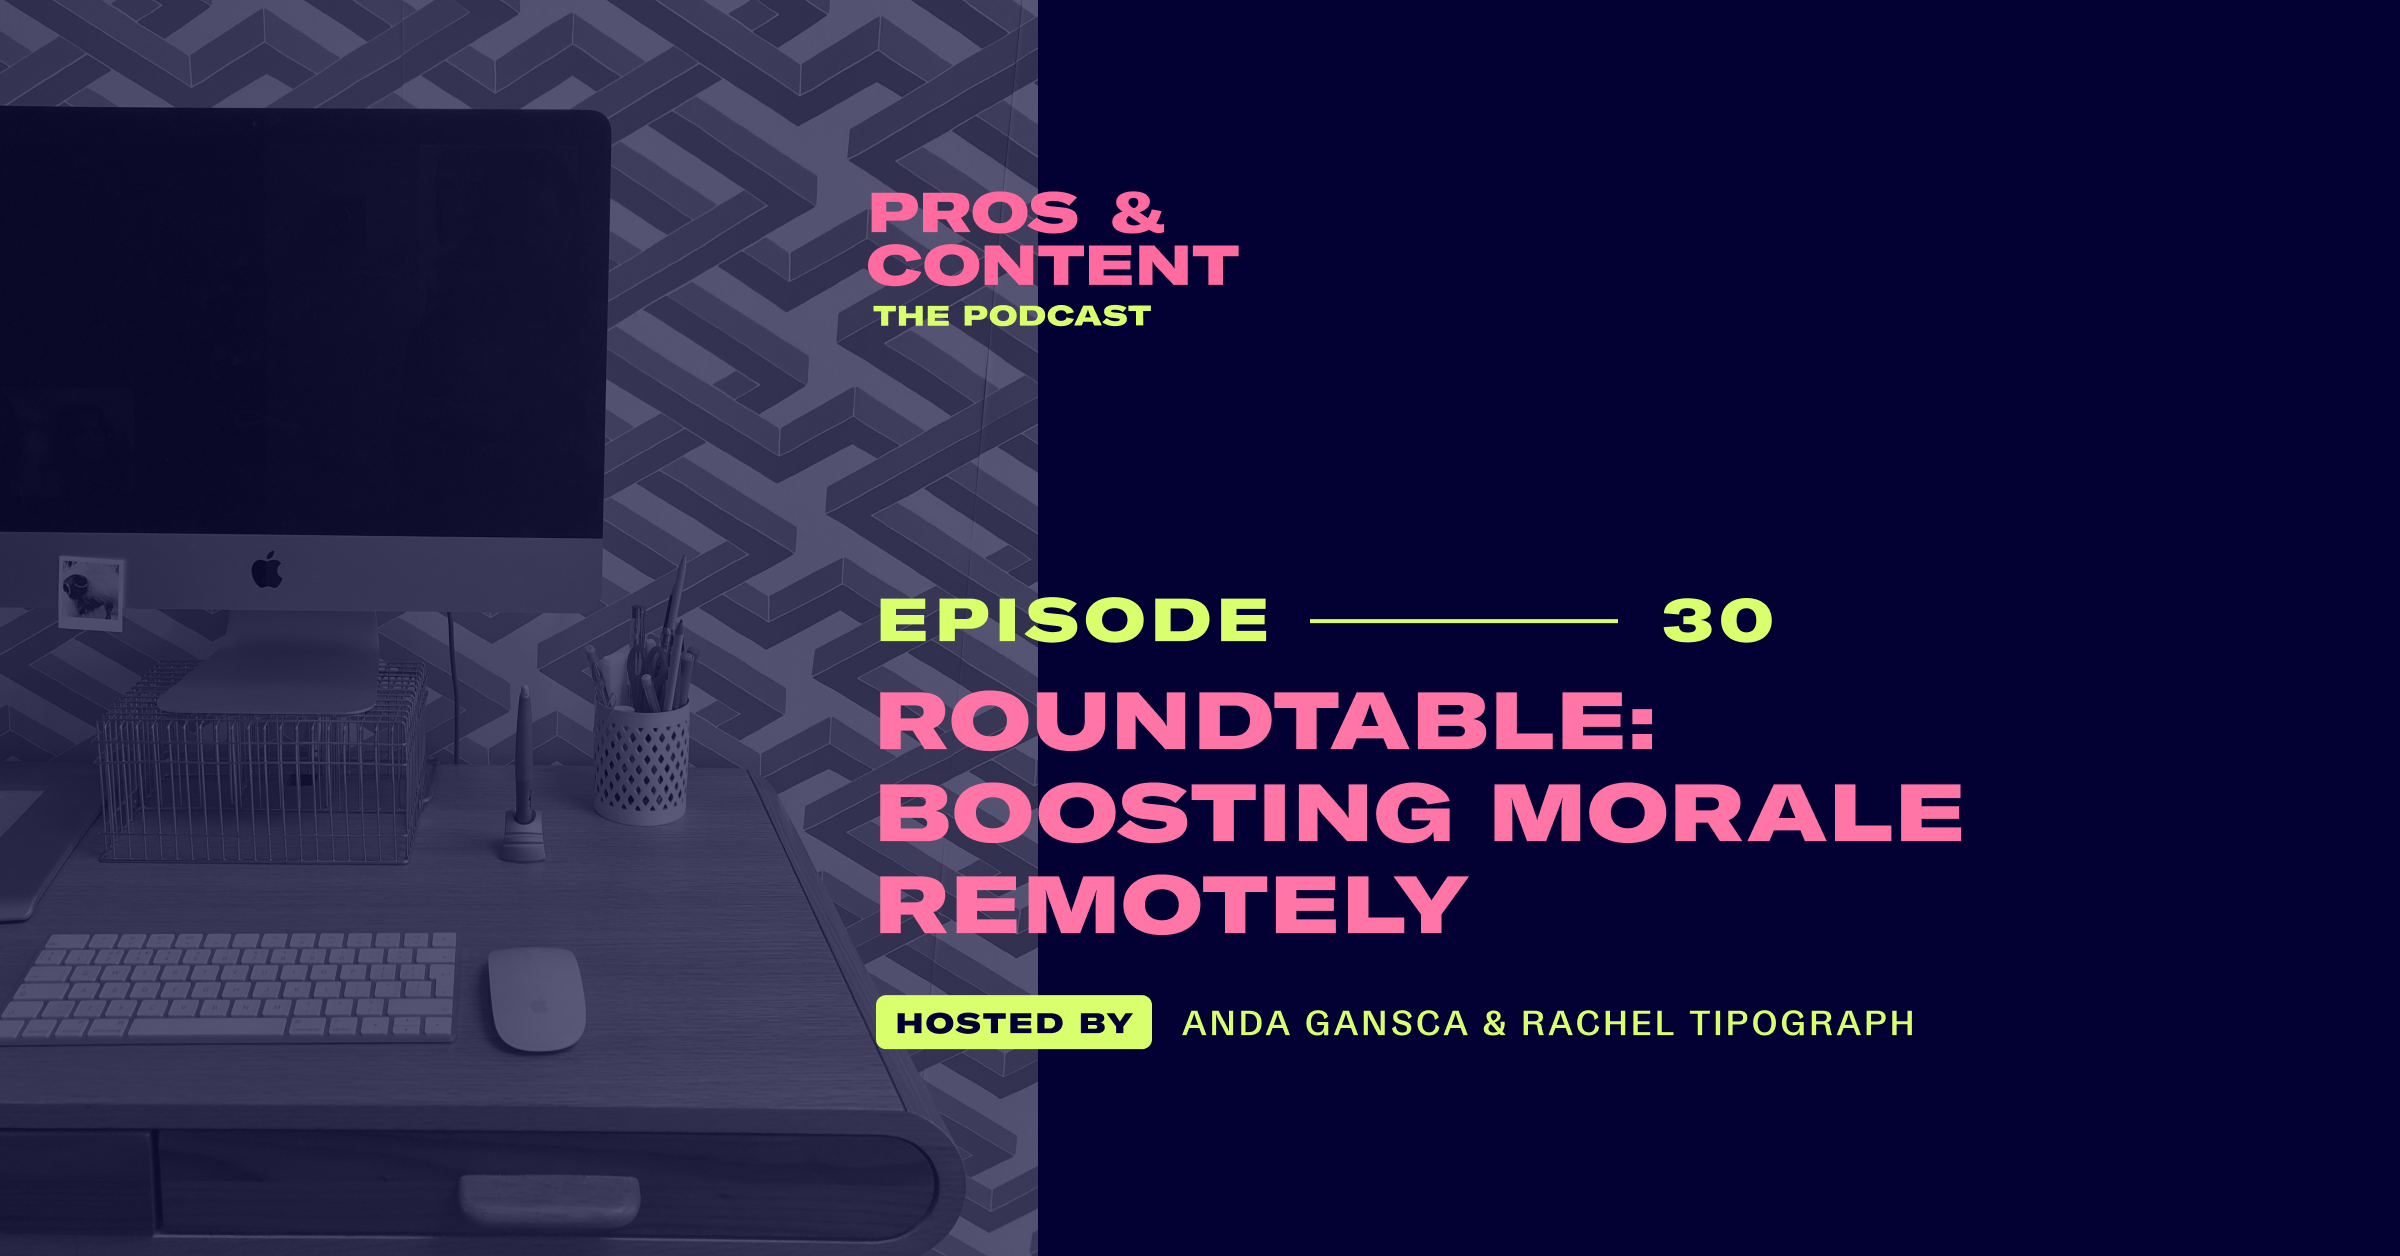 Pros & Content Podcast: Roundtable - Boosting Morale Remotely